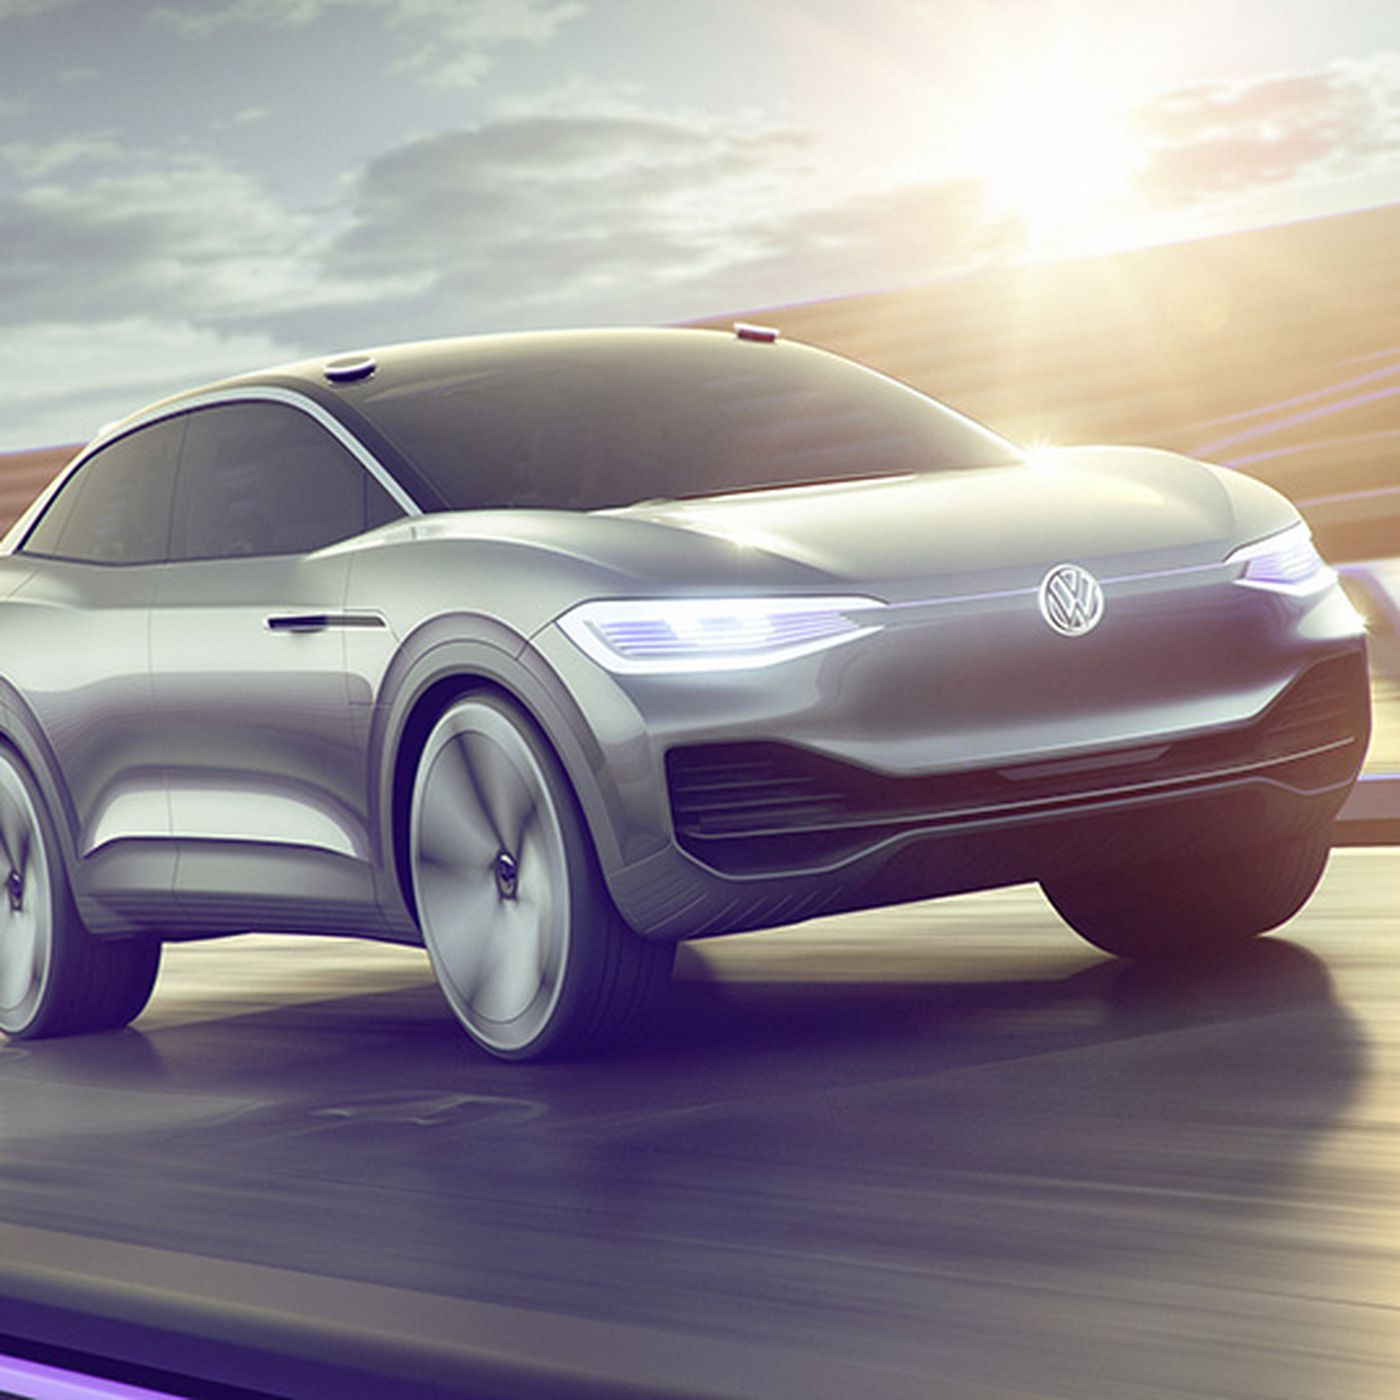 VW ID Crozz Electric Crossover SUV: Design, Release >> Volkswagen S I D Crozz Is A Sharp Electric Concept With A